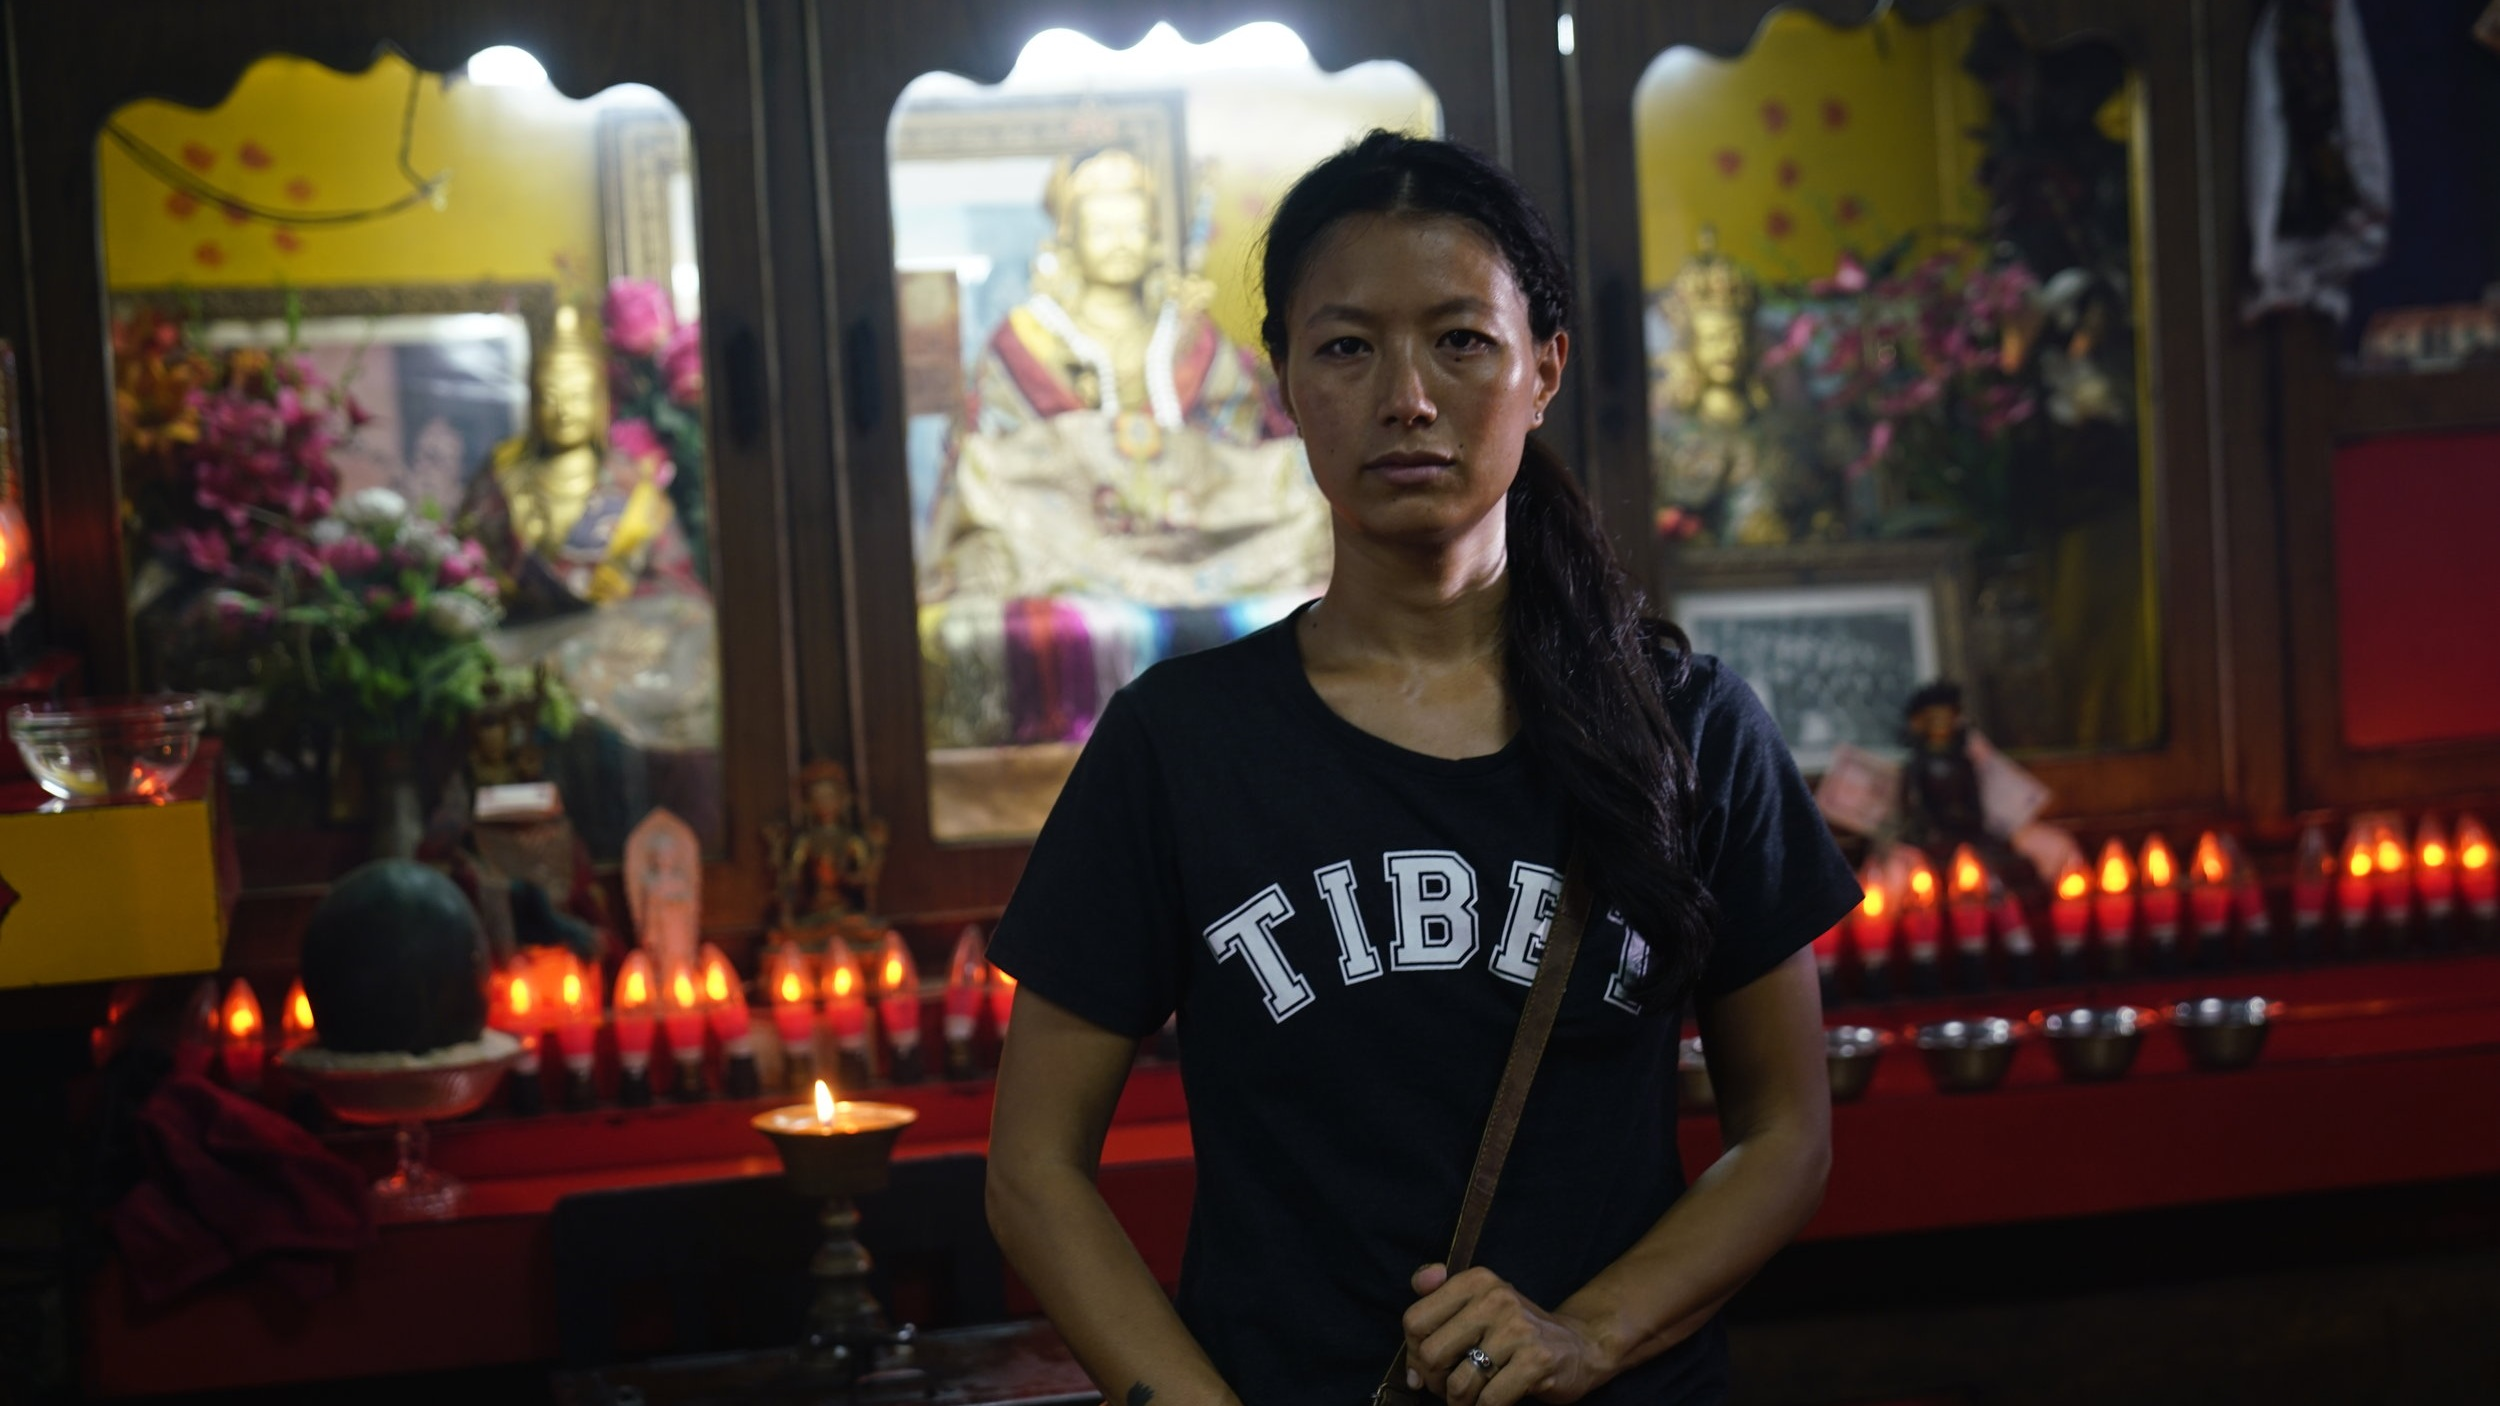 The Sweet Requiem Tenzing Sonam, Ritu Sarin   2018   India, USA   91'   Drama   Tibetan with English Subtitles Script: Tenzing Sonam Actors:    Lhakpa Tsering   ,    Jampa Kalsang   ,    Tenzin Dechen   , and others.     WATCH THE TRAILER    At the age of 8, Dolkar and her father flee their homeland in Tibet. An arduous journey through the Himalayas follows. The now 26-year-old Tibetan exile lives in a Tibetan refugee colony in Delhi, India, where an unexpected encounter with a man from her past reveals long suppressed memories and drives Dolkar on an obsessive search for the truth.